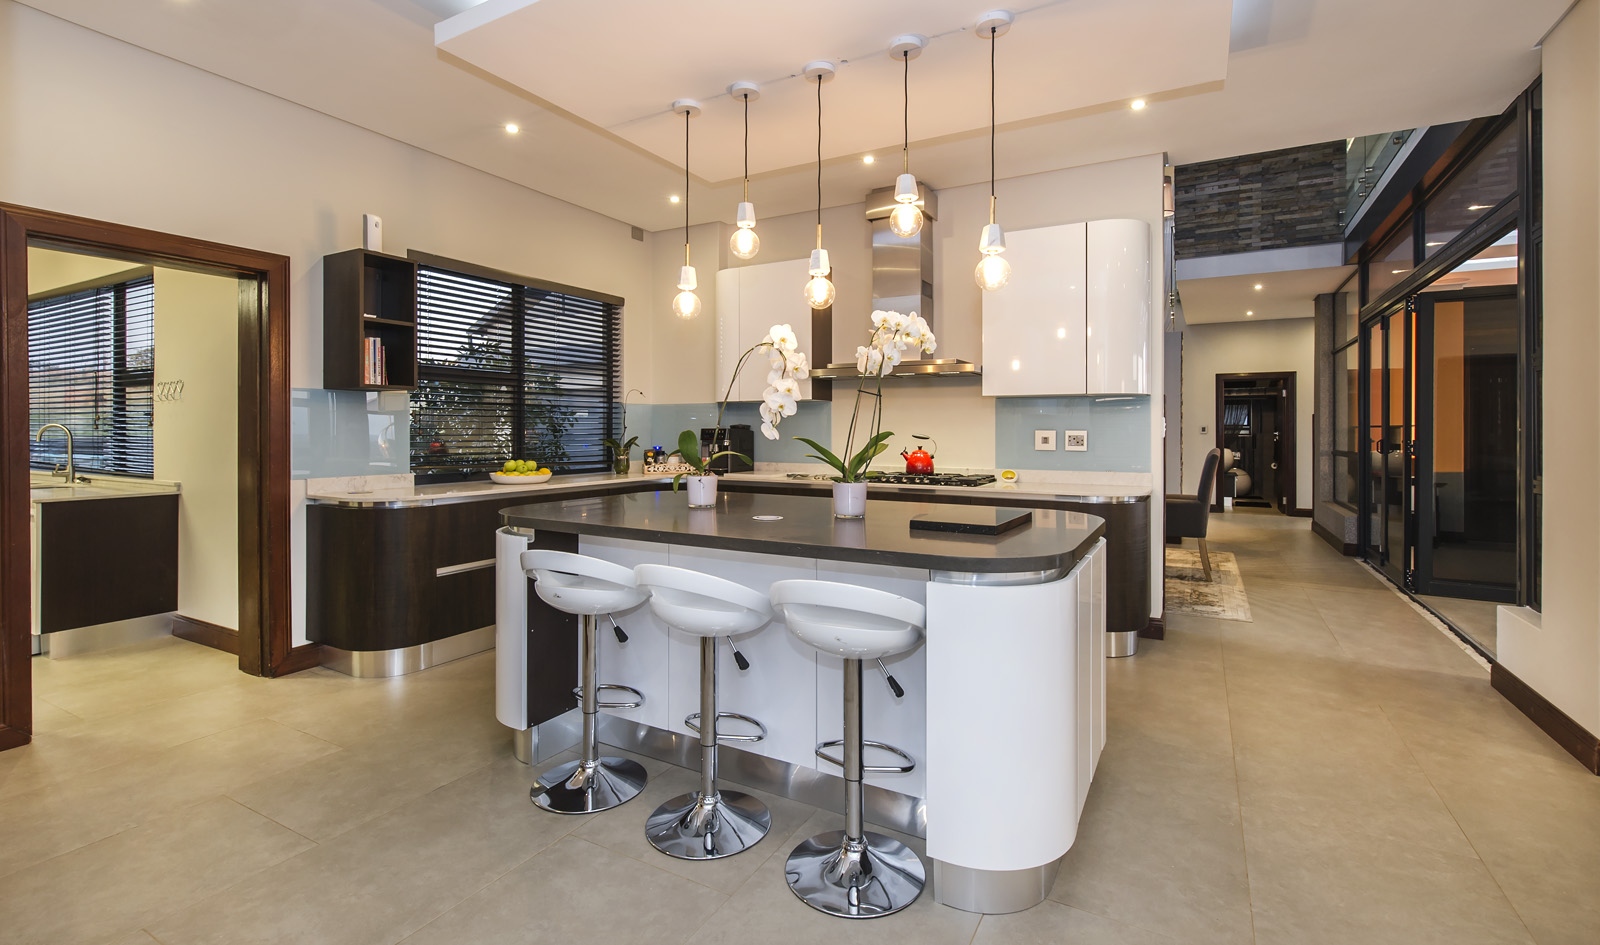 Hire the best interior designer service in South Africa for the best and affordable home design